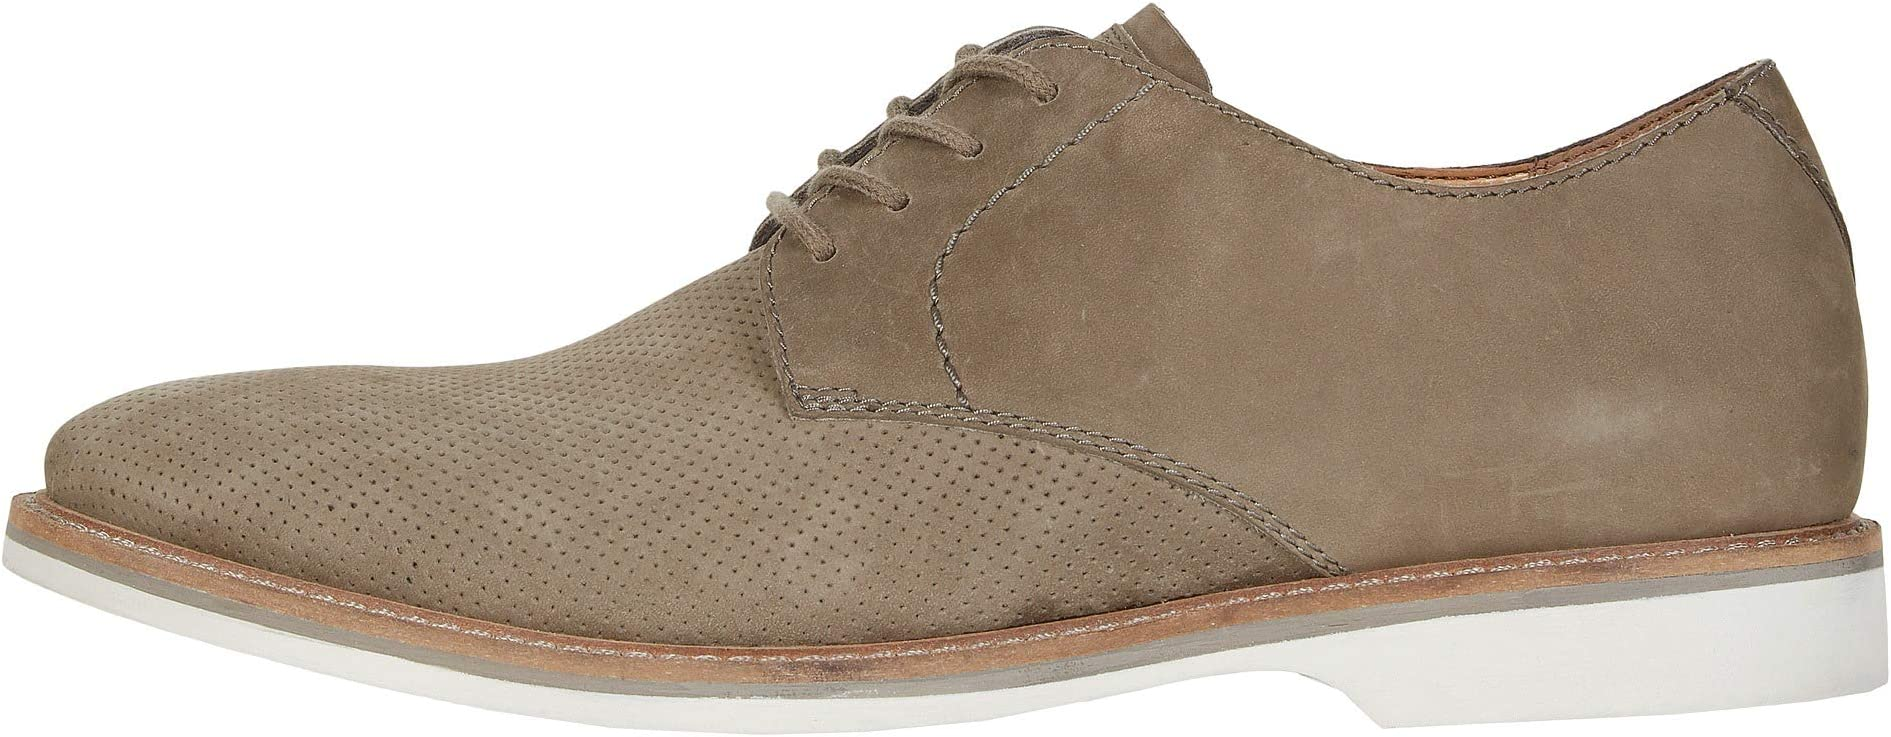 Clarks Atticus Lace | Men's shoes | 2020 Newest